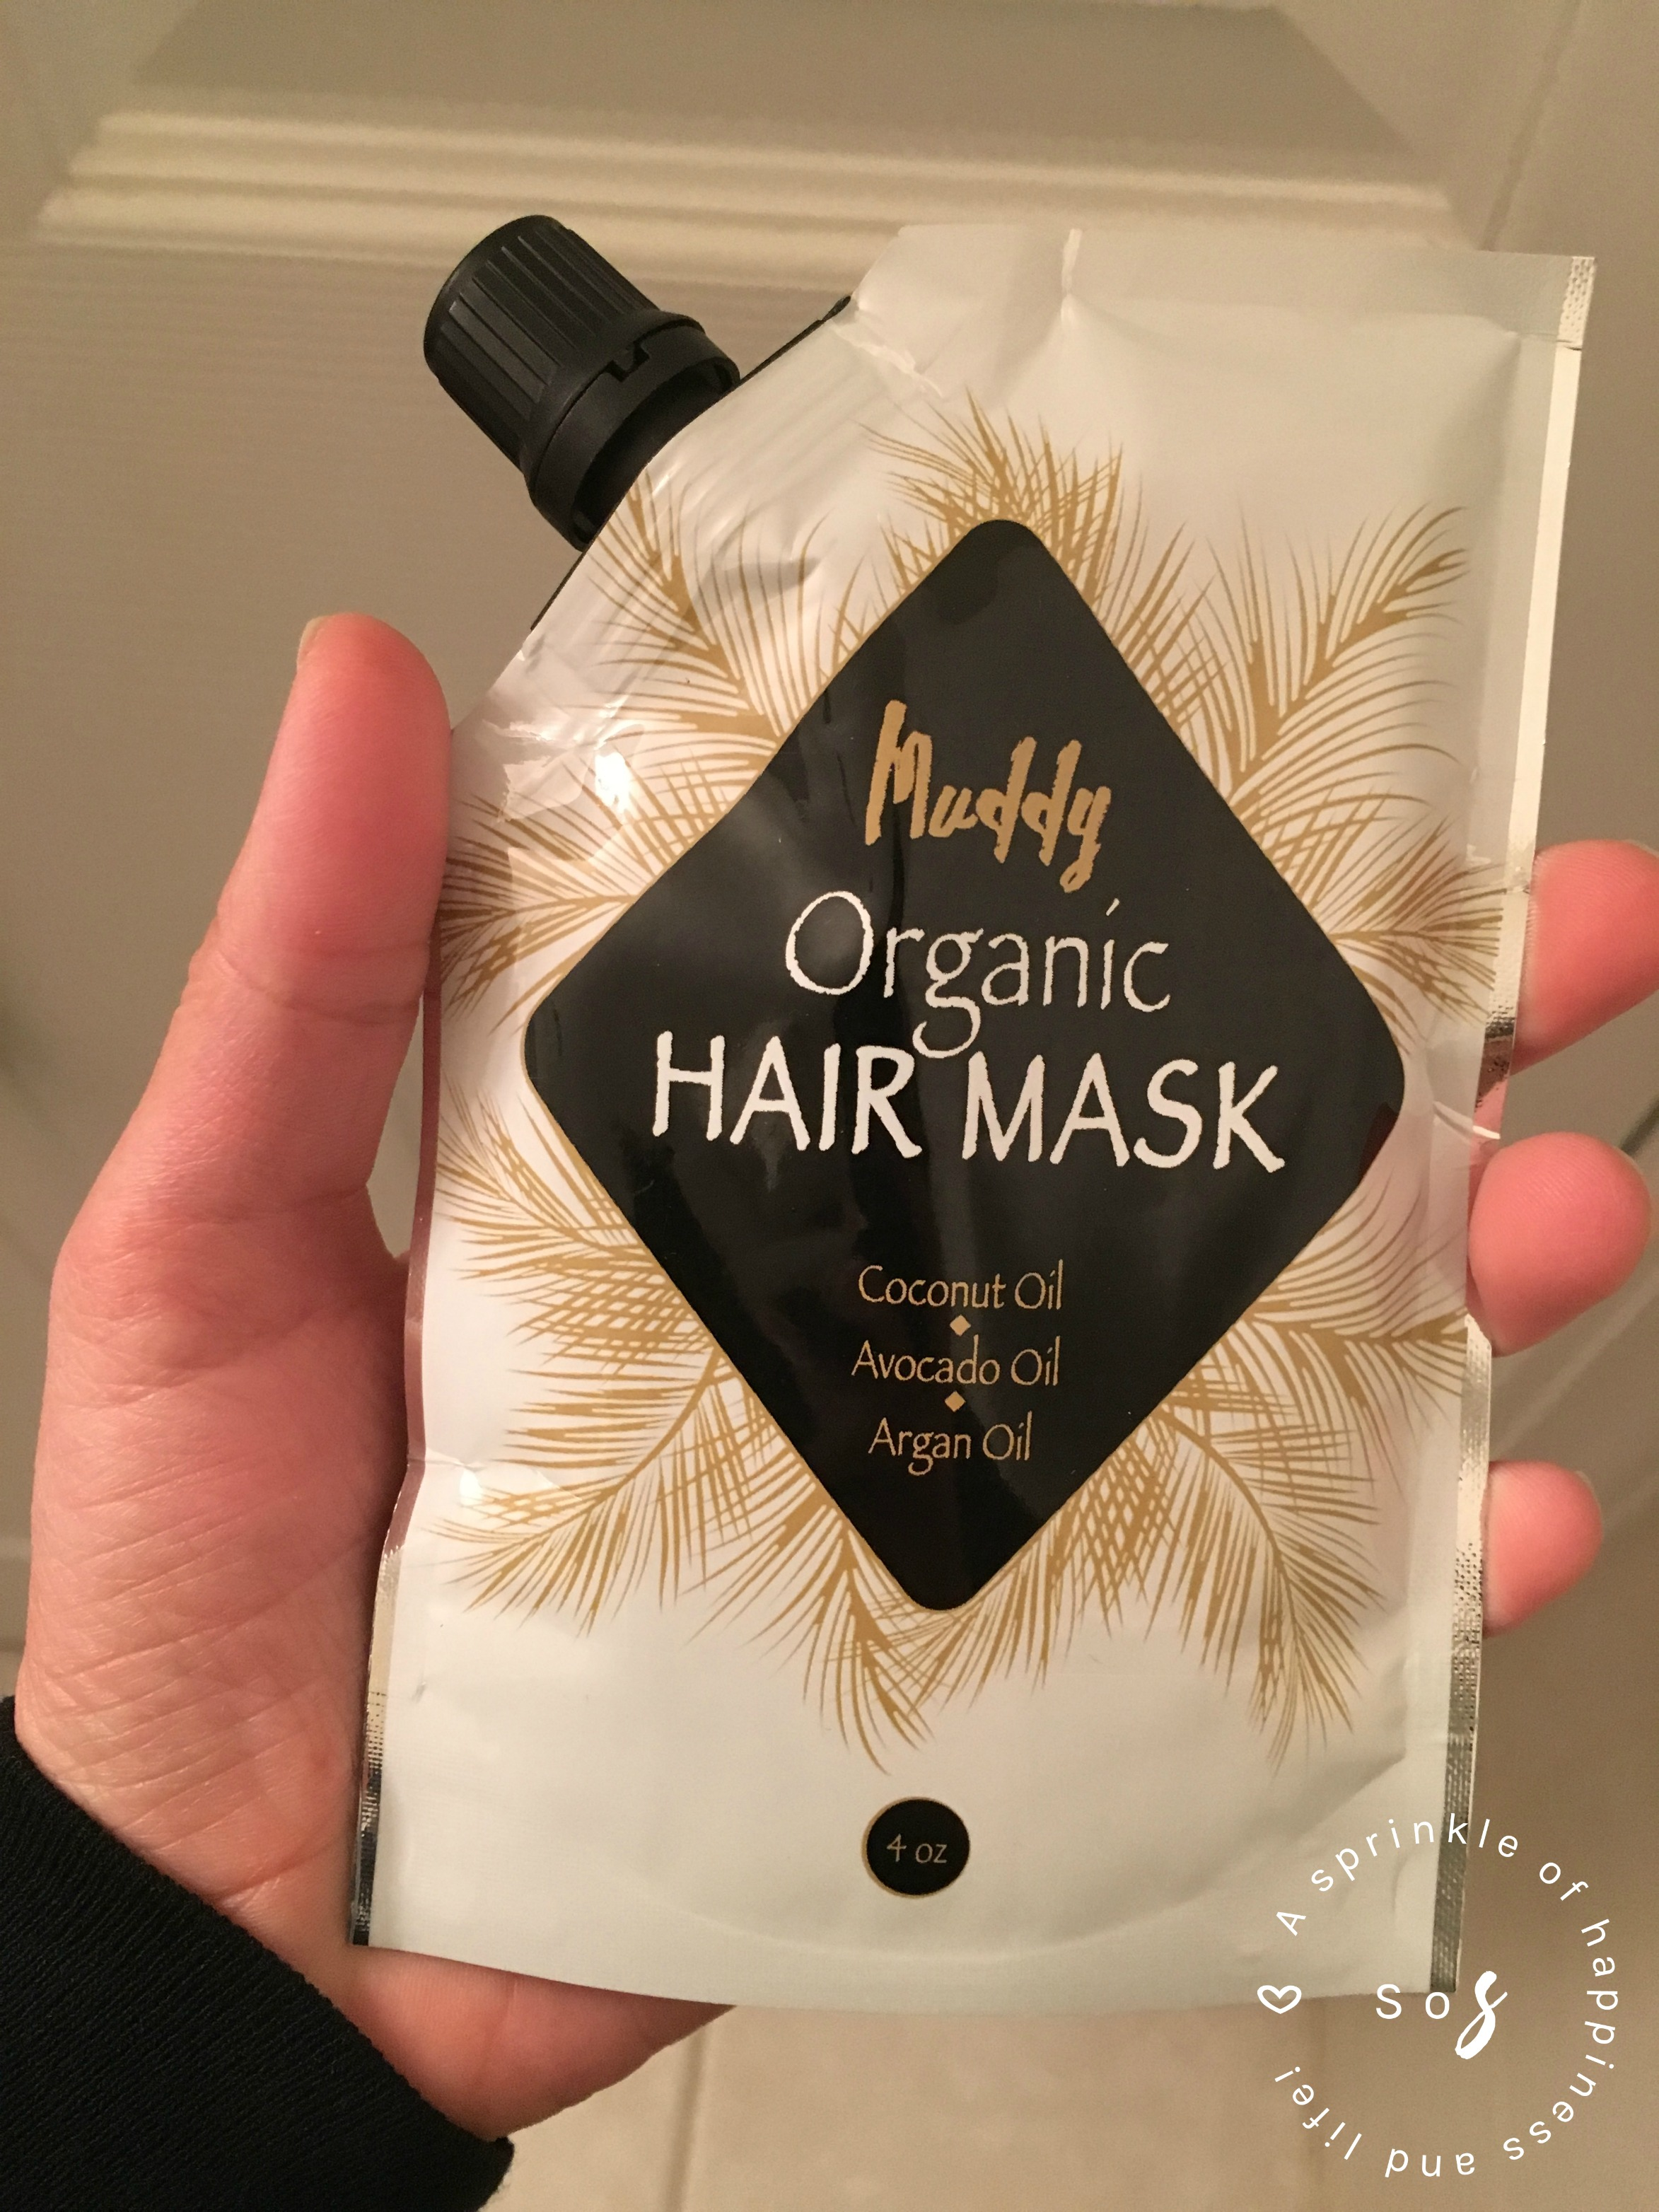 Muddy Body Organic Hair Mask–Review!